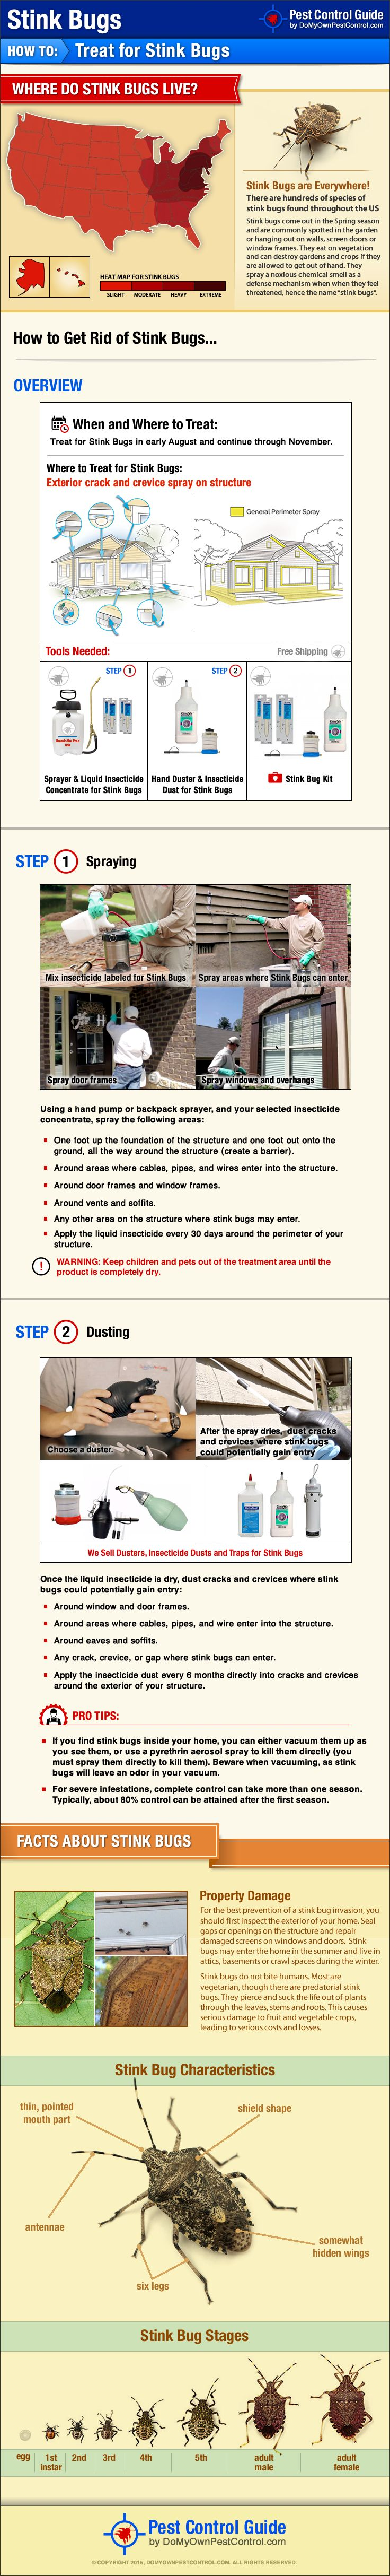 Learn how to get rid of stink bugs yourself with this new DIY stink bug treatment guide. Click here to purchase the products mentioned in this guide: http://www.domyownpestcontrol.com/stink-bugs-c-211.html